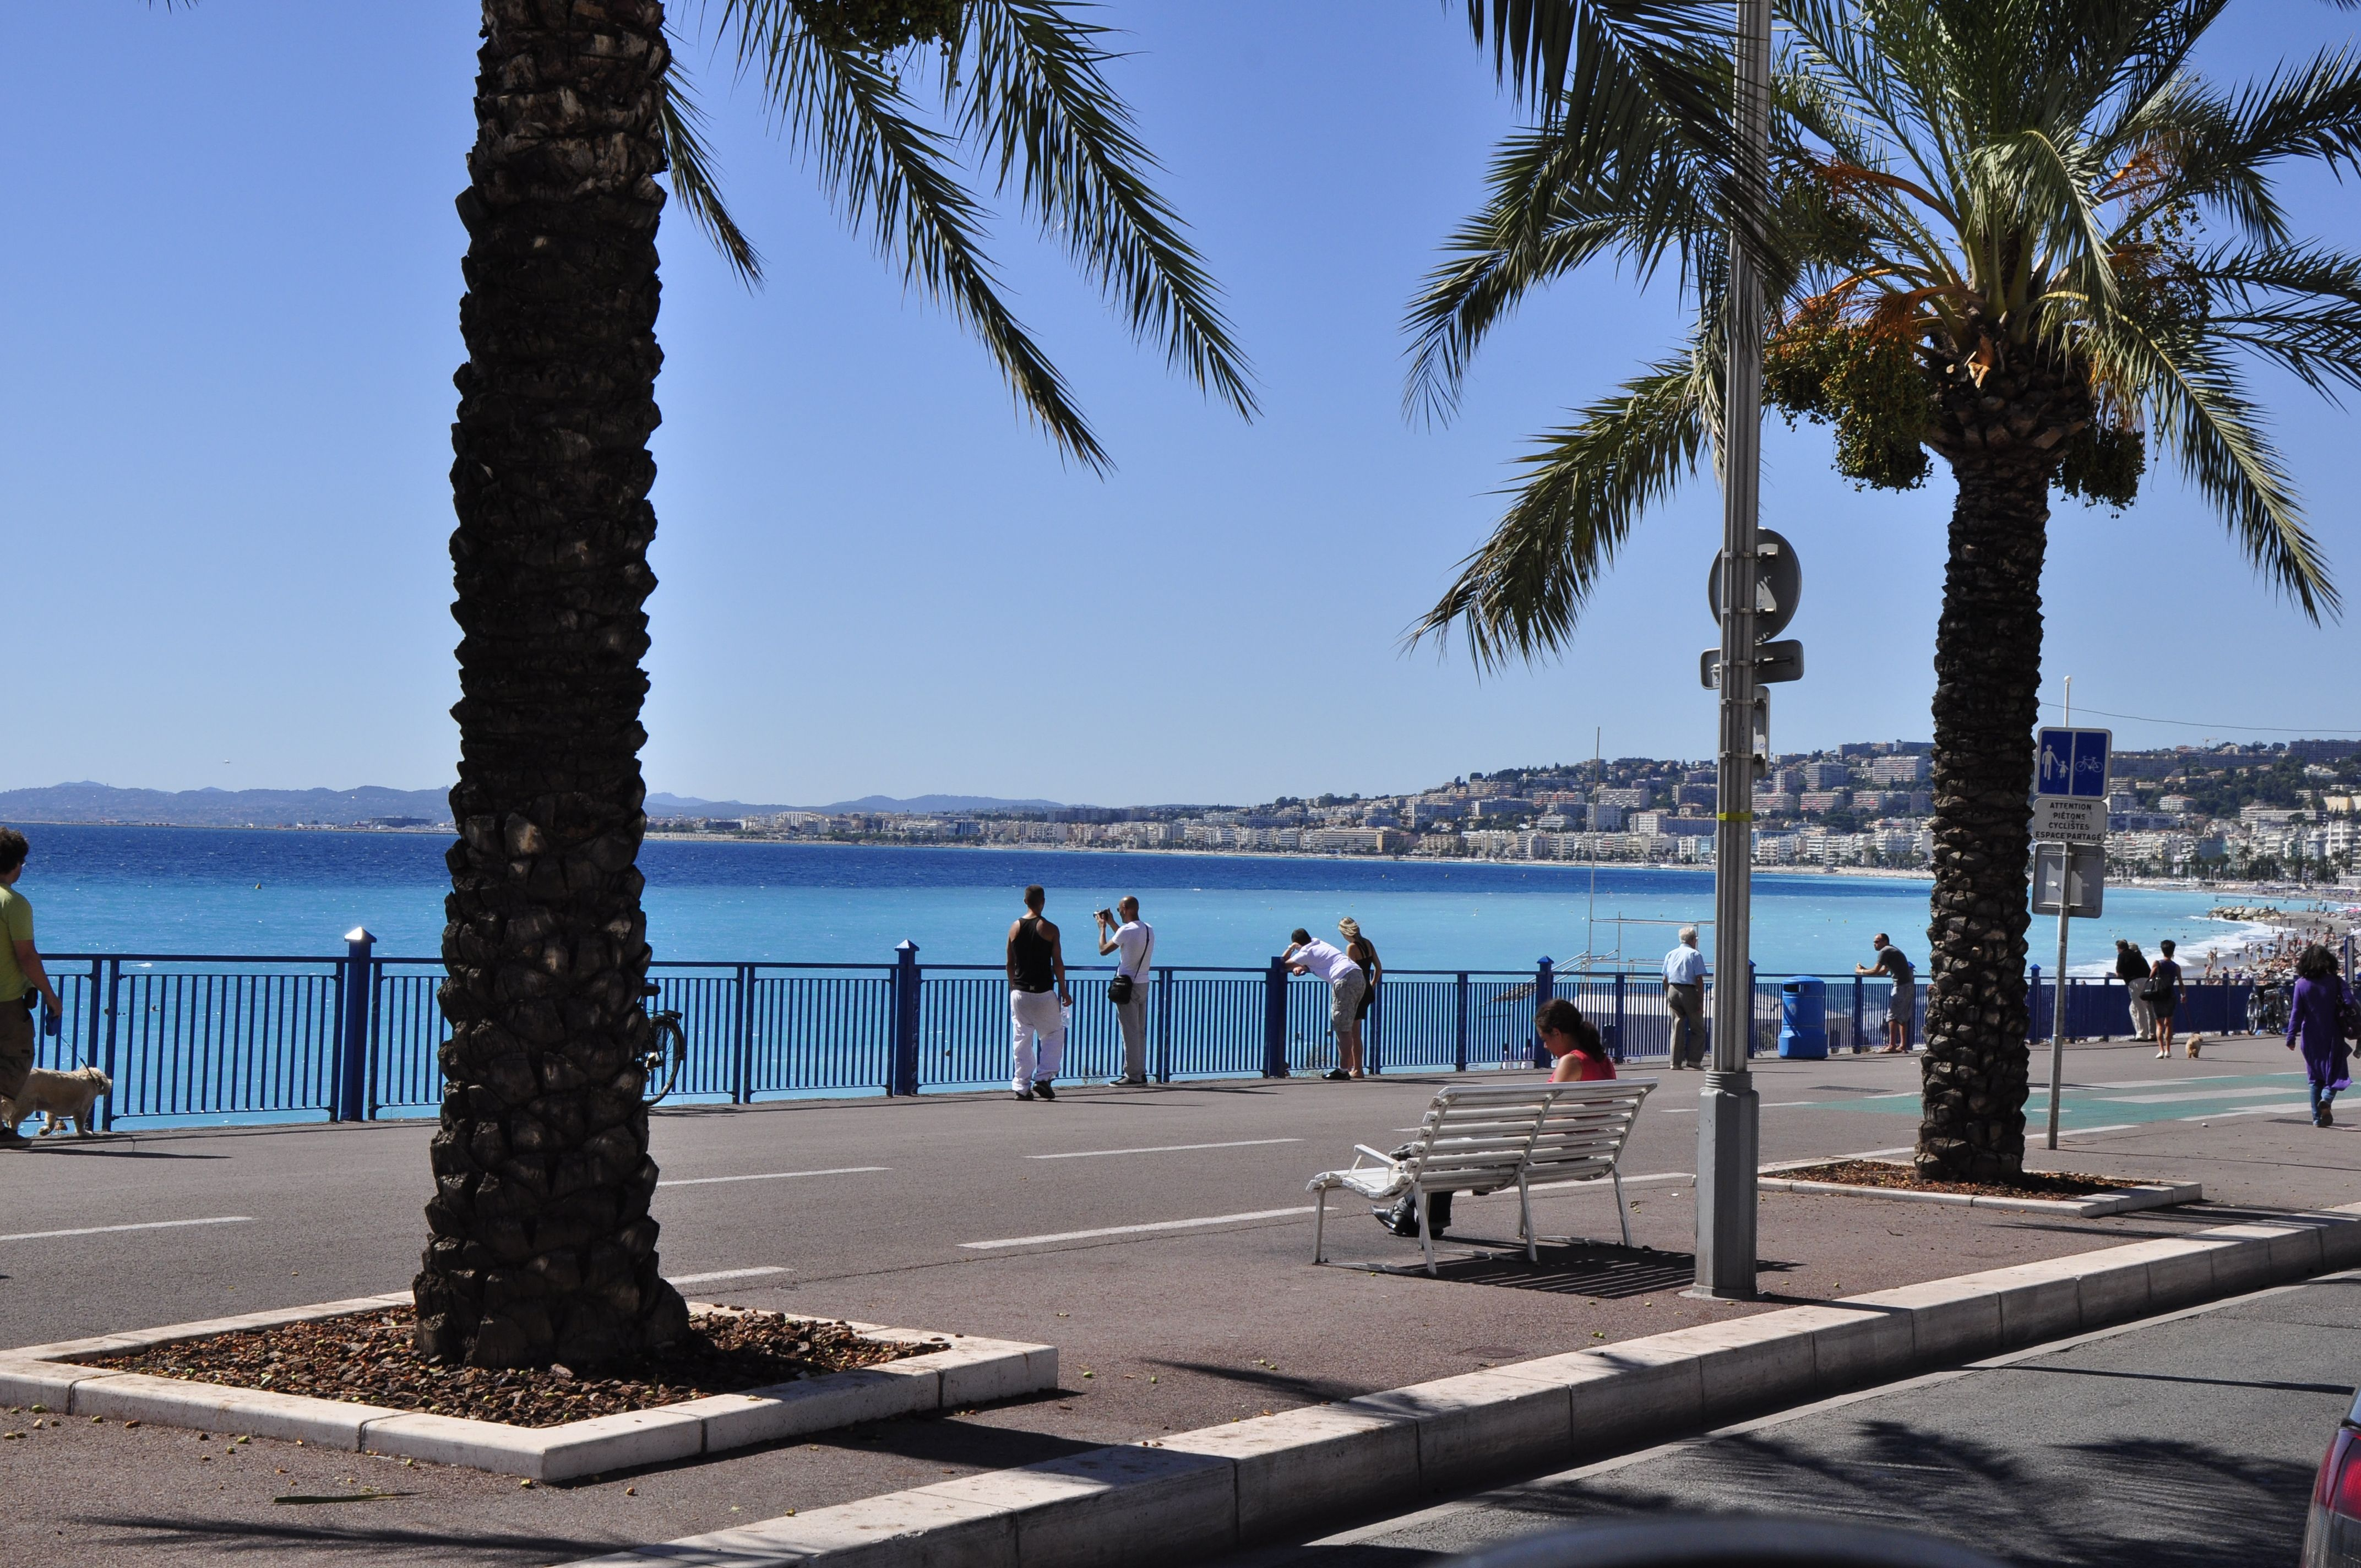 Promenade des anglais-Nice (by bicycle)